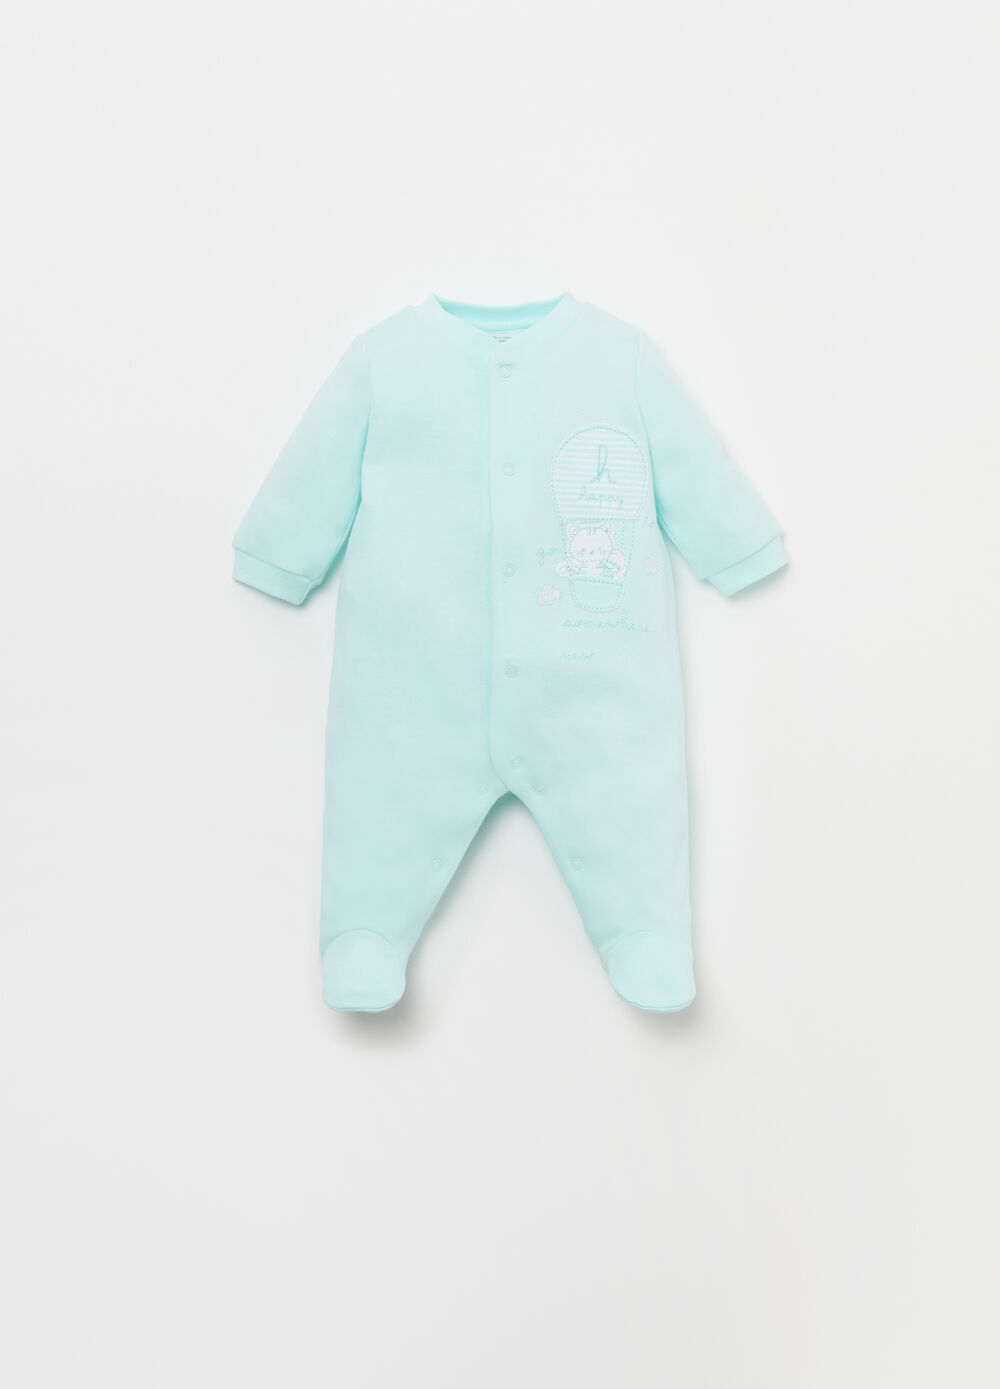 100% cotton onesie with kitten motif and embroidery